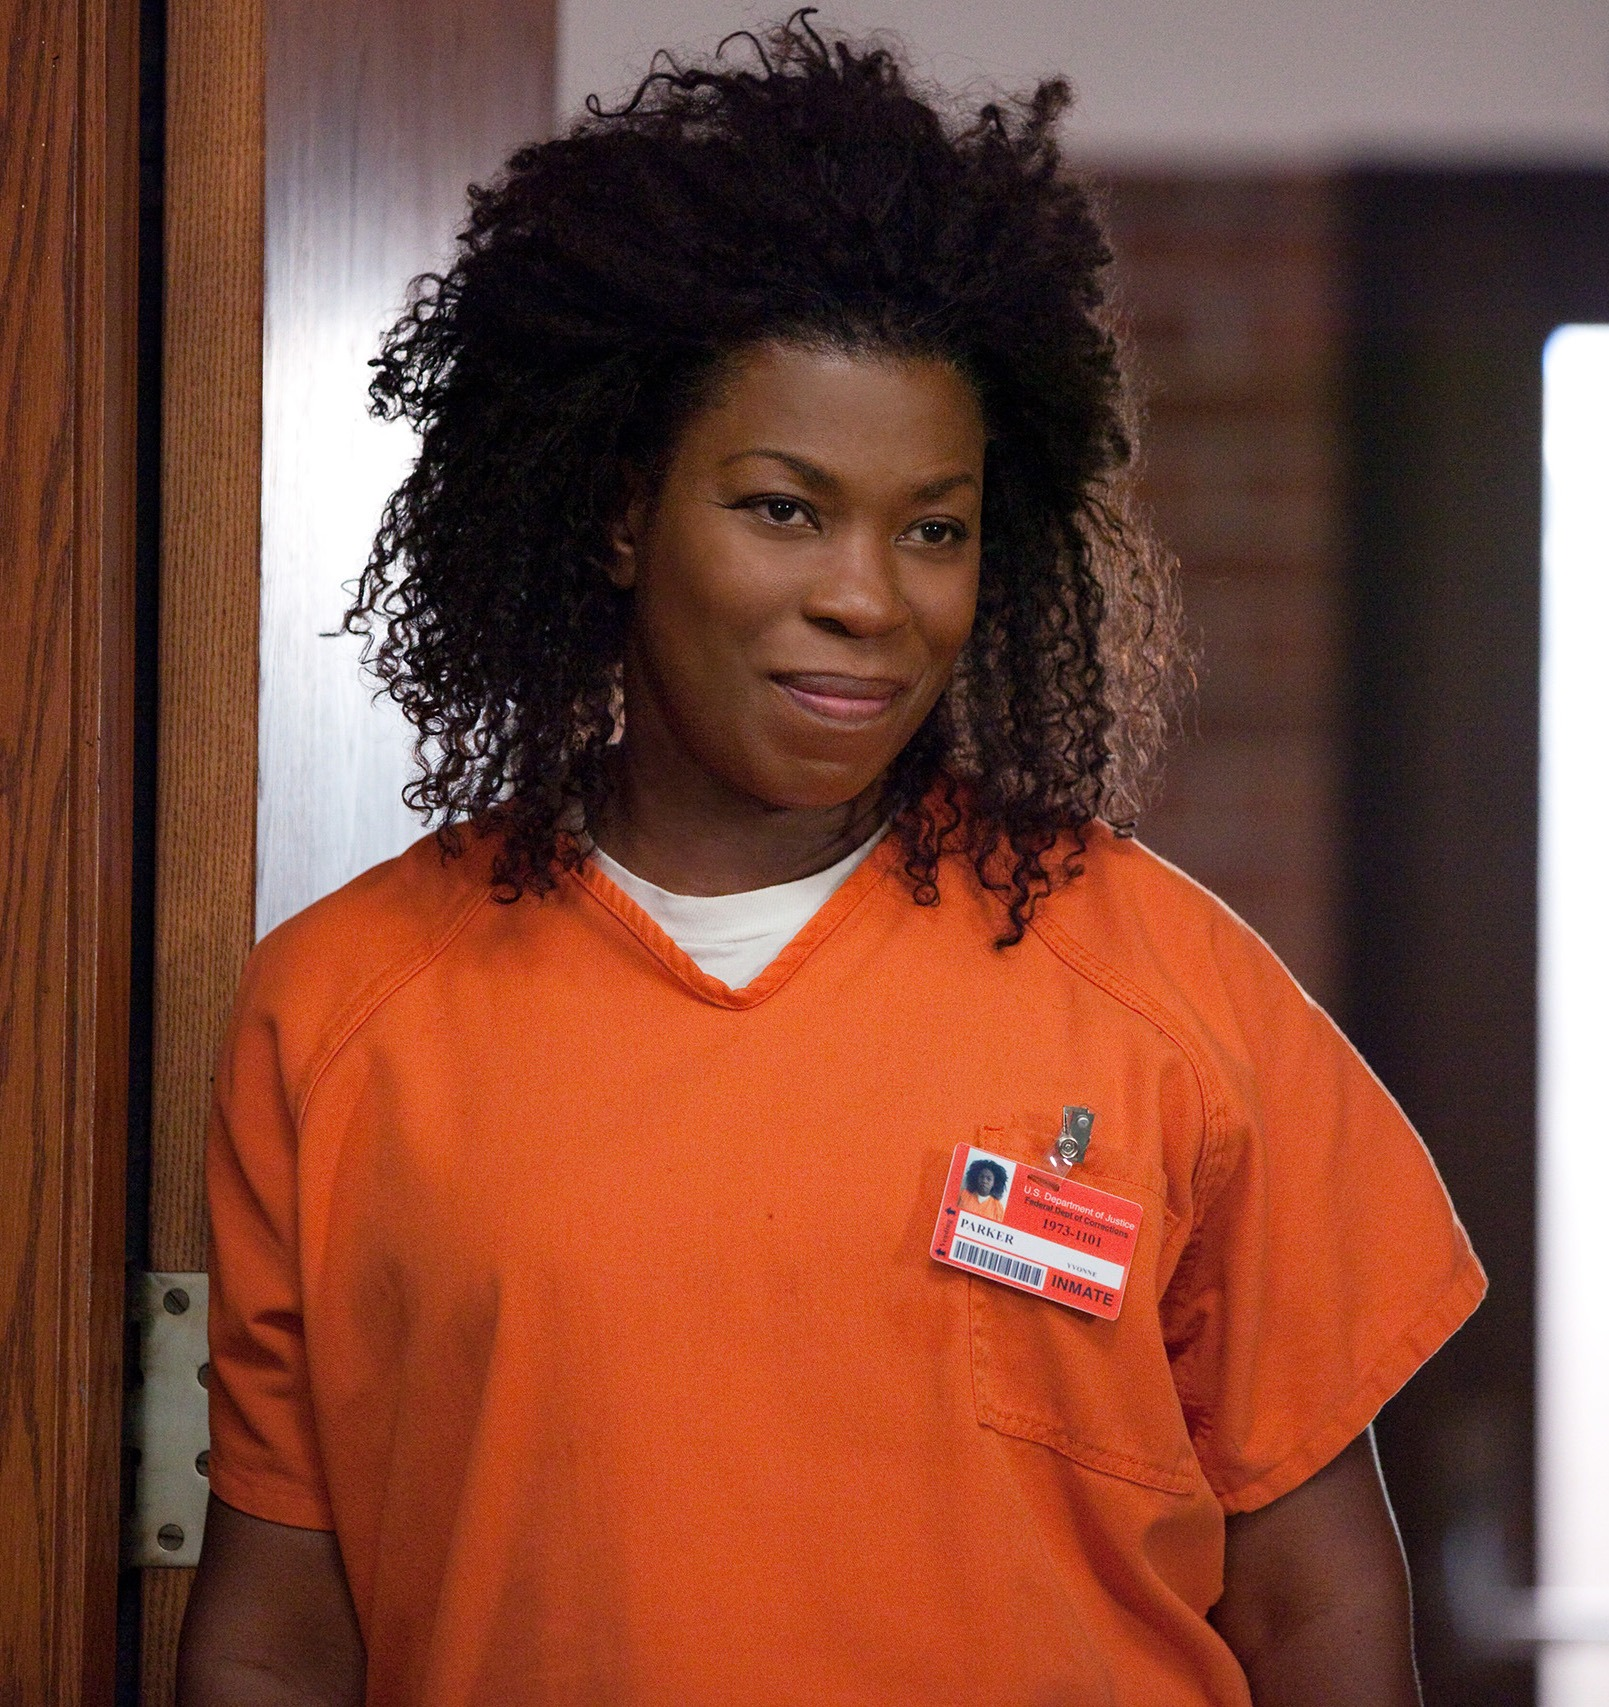 140612 fallon oitnb toussaint tease vq0jvs 25 Things You Didn't Know About Orange Is The New Black